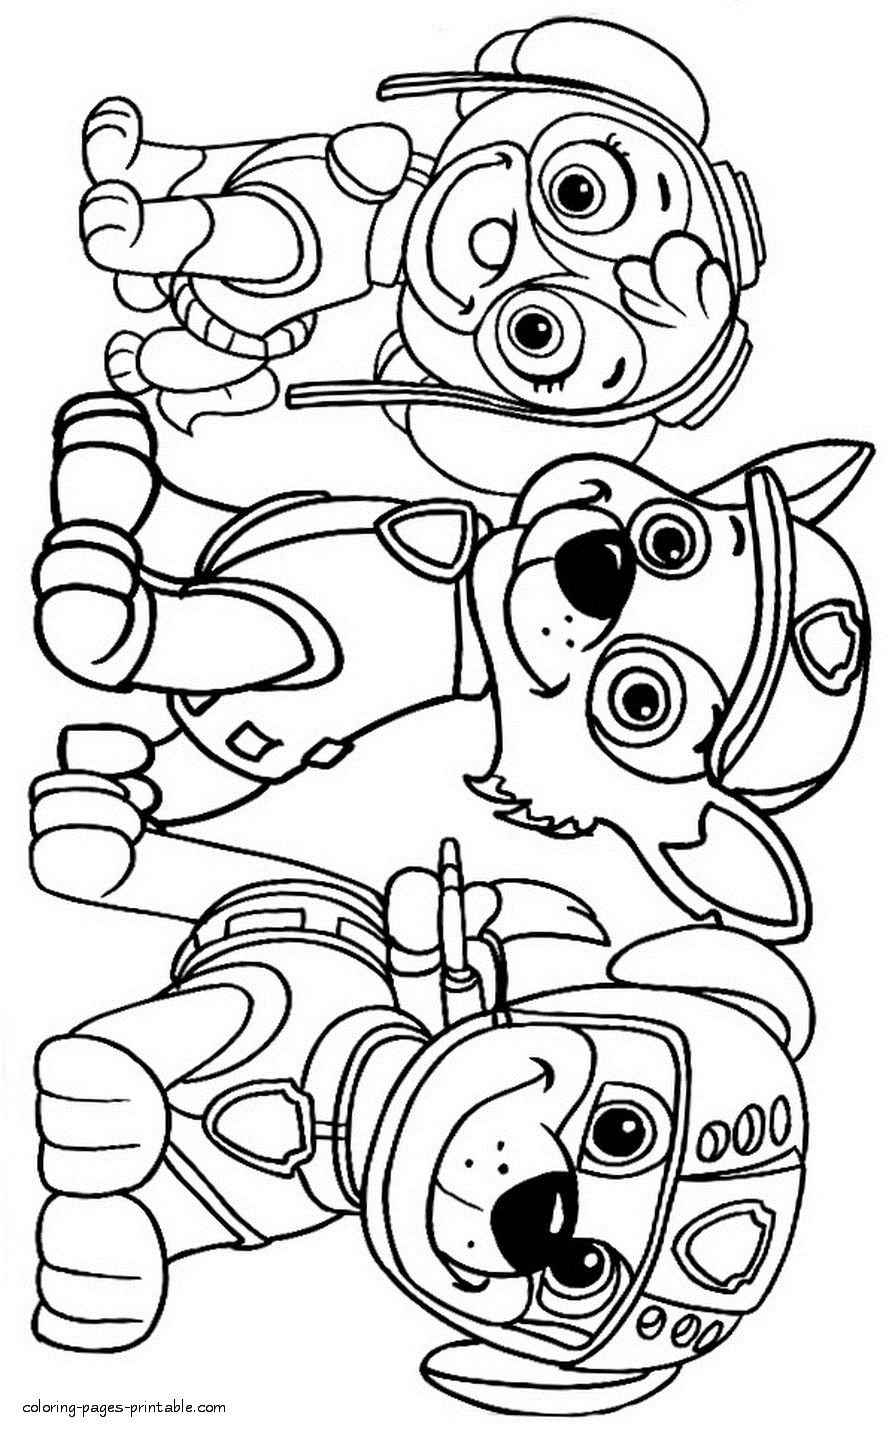 paw patrol pictures to print cool winsome free printable paw patrol coloring pages best paw to pictures print patrol